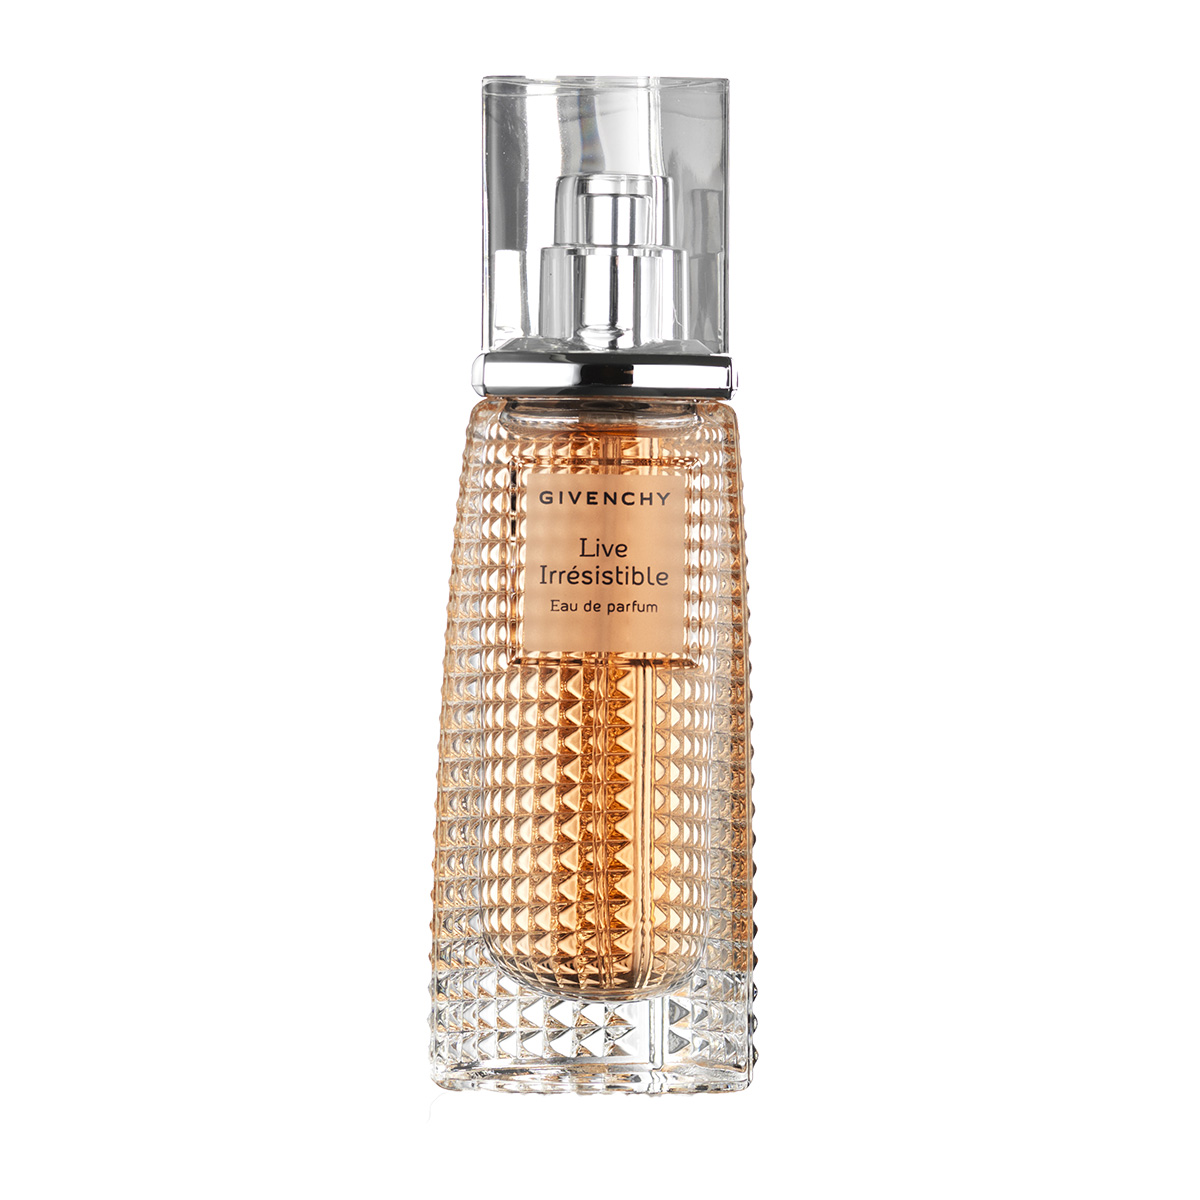 Givenchy Live Irresistible EdP - 30 ml